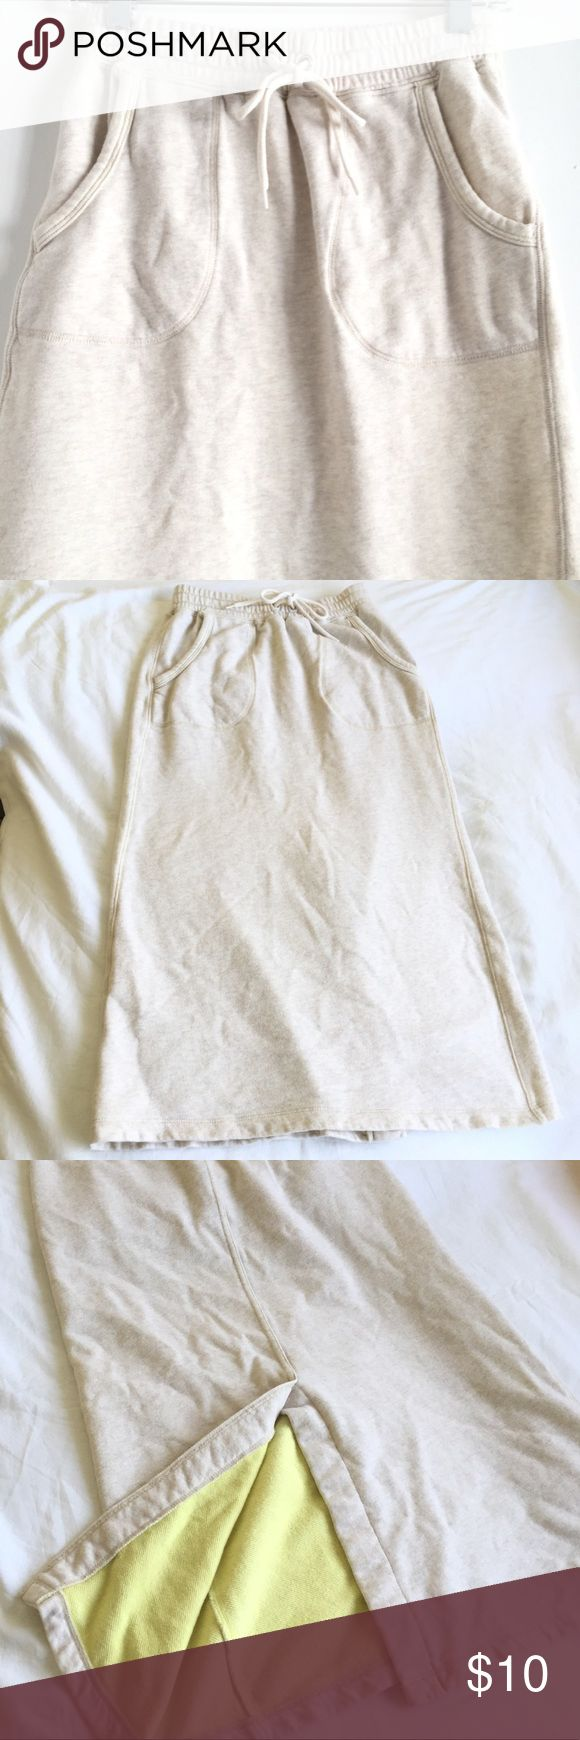 """Uniqlo Cotton Drawstring Maxi Skirt Xs Gently used Uniqlo maxi skirt. Perfect loungewear. Color is light oatmeal brown outside with soft yellow inside. Very cute skirt for everyday use.  Approximate measurements: Waste 13"""" Length 31""""  100% cotton.  From pet and smoke free home Uniqlo Dresses Maxi"""